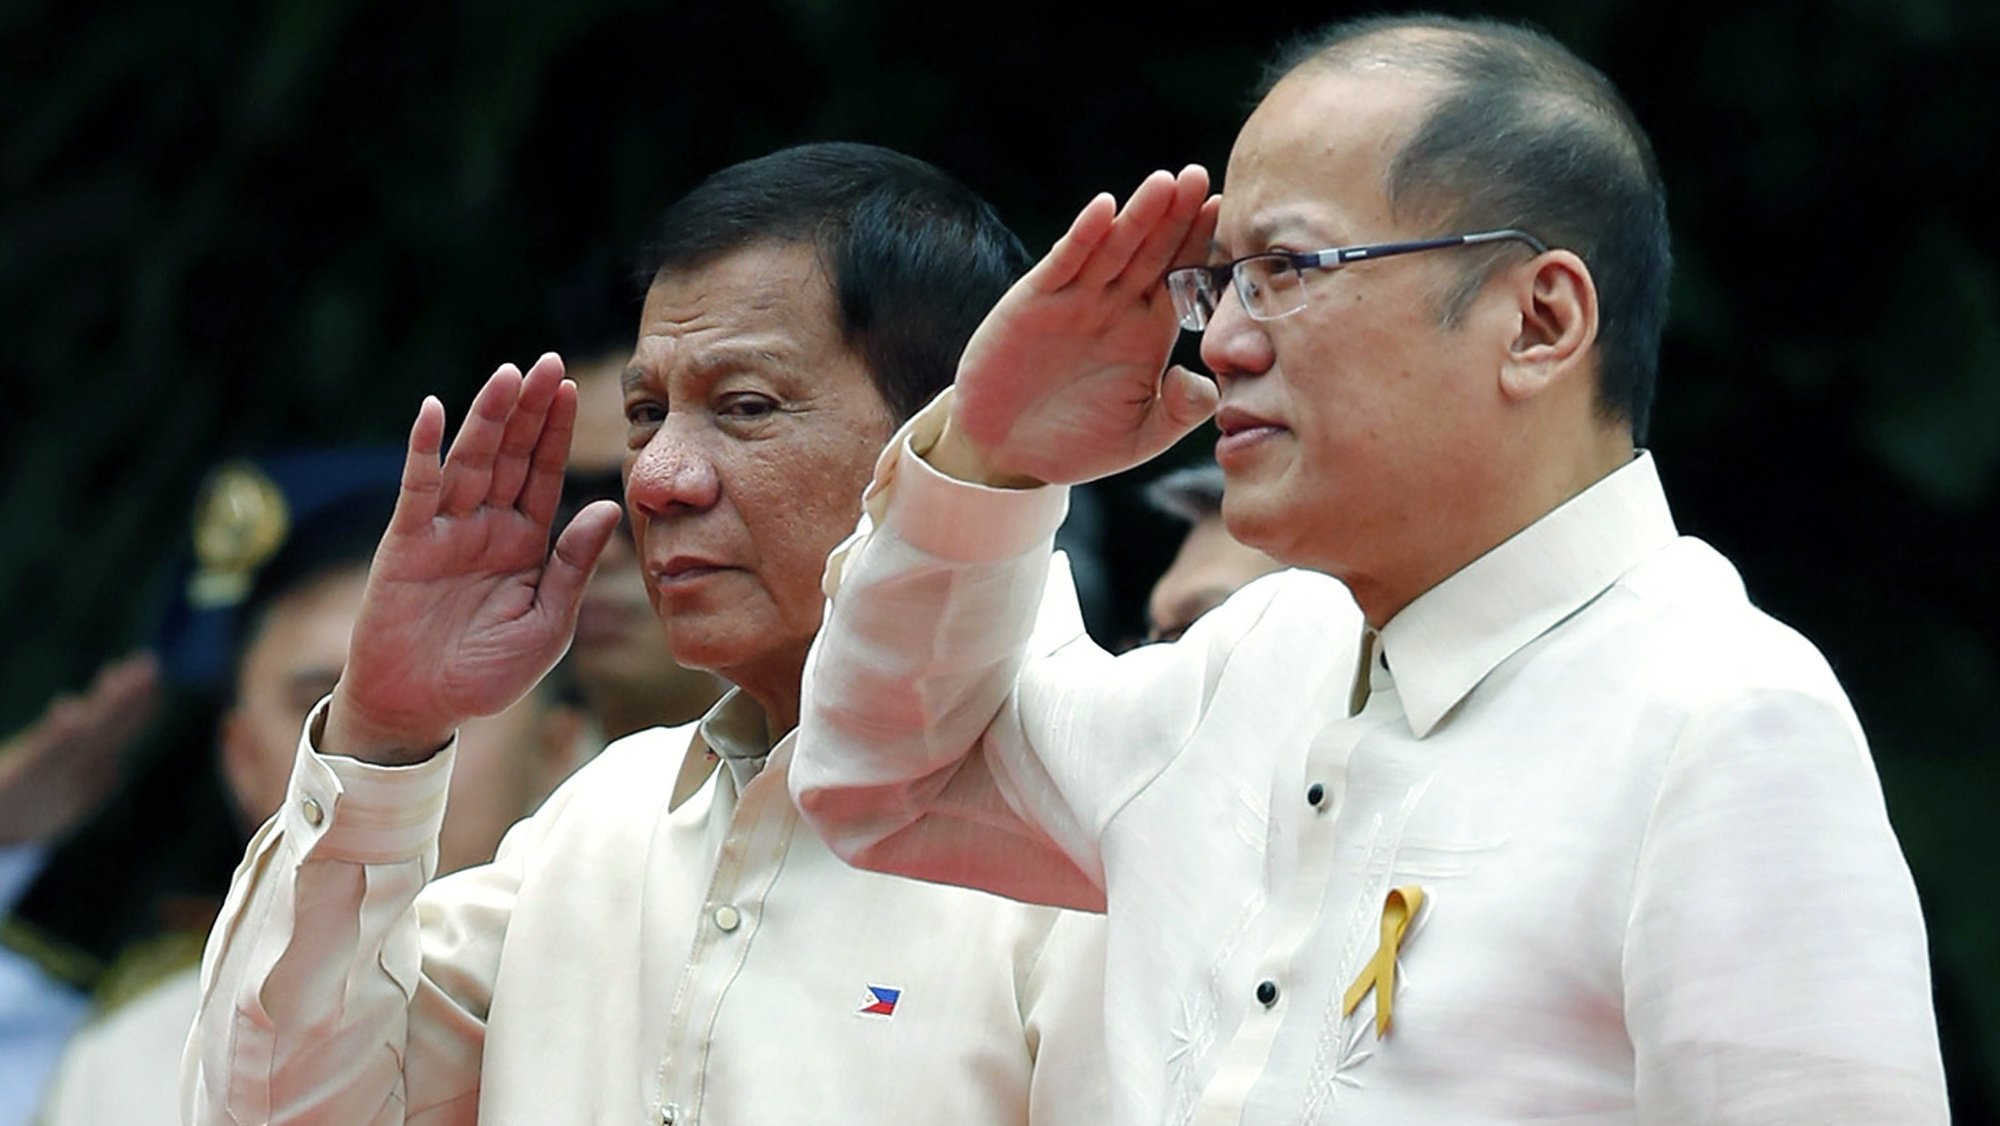 epa09297799 (FILE) - Incoming Filipino President Rodrigo Duterte (L) and outgoing President Benigno Aquino III (R) salute during Duterte's inauguration ceremony at the Malacanang presidential palace grounds in Manila, Philippines, 30 July 2016 (reissued 24 June 2021). Former president of the Philippines Benigno Aquino III died at the age of 61 on 24 June 2021.  EPA/FRANCIS R. MALASIG